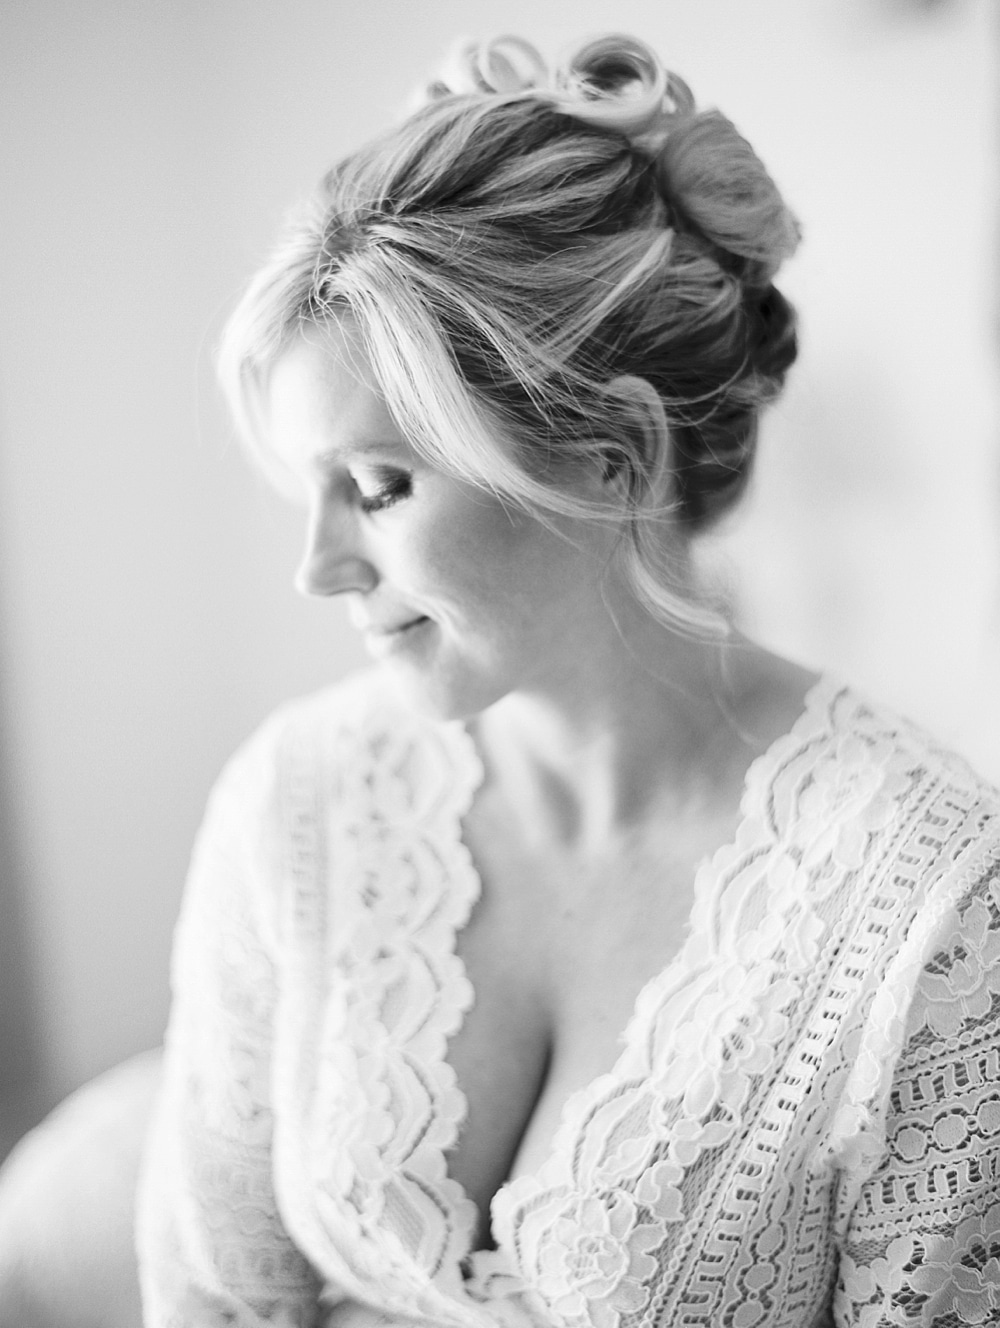 Kristin-La-Voie-Photography-Austin-Wedding-Photographer-lake-travis-78